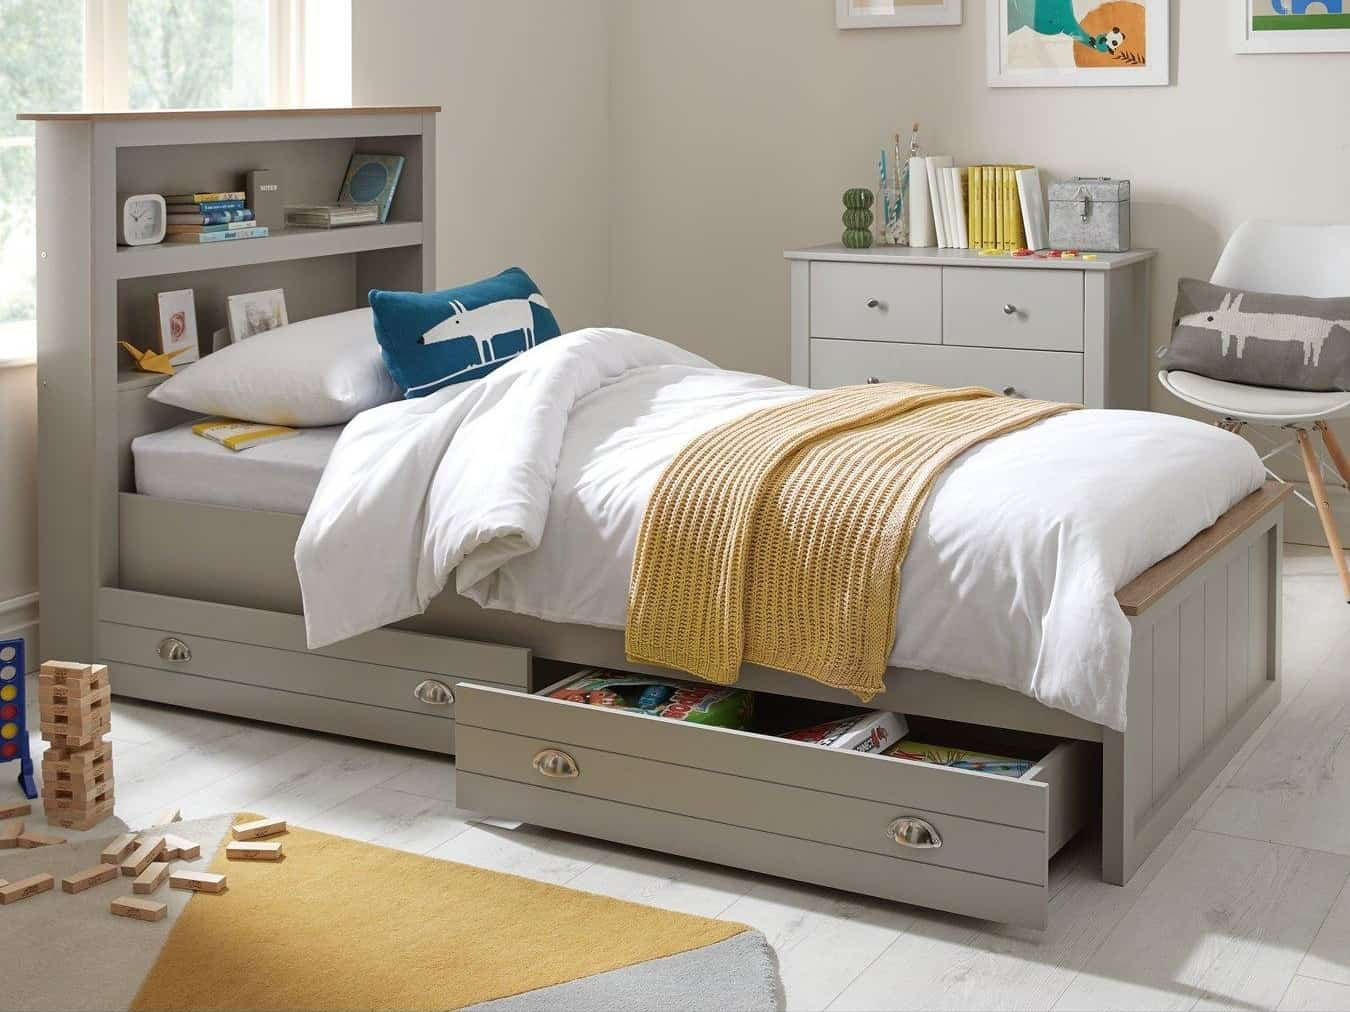 Grey-painted kid's bed